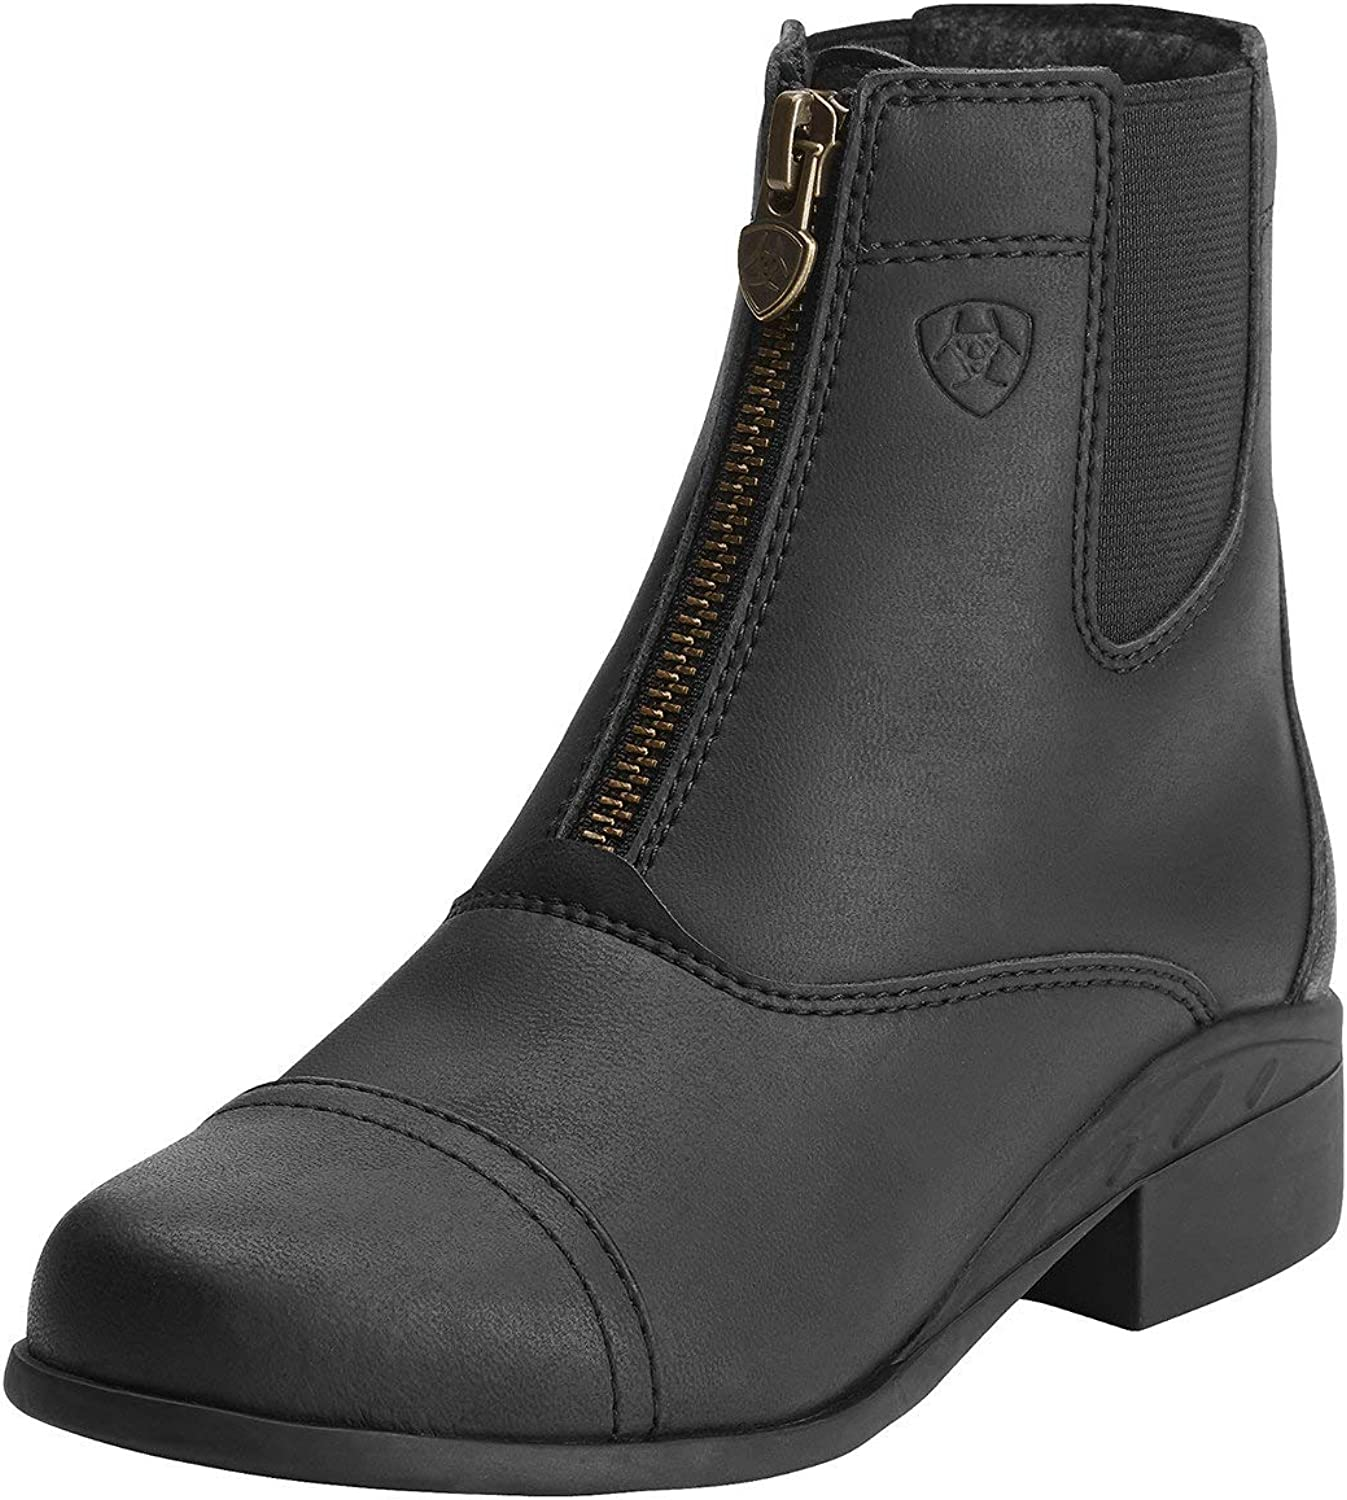 Ariat Boys' Scout Zip Paddock Riding Boot